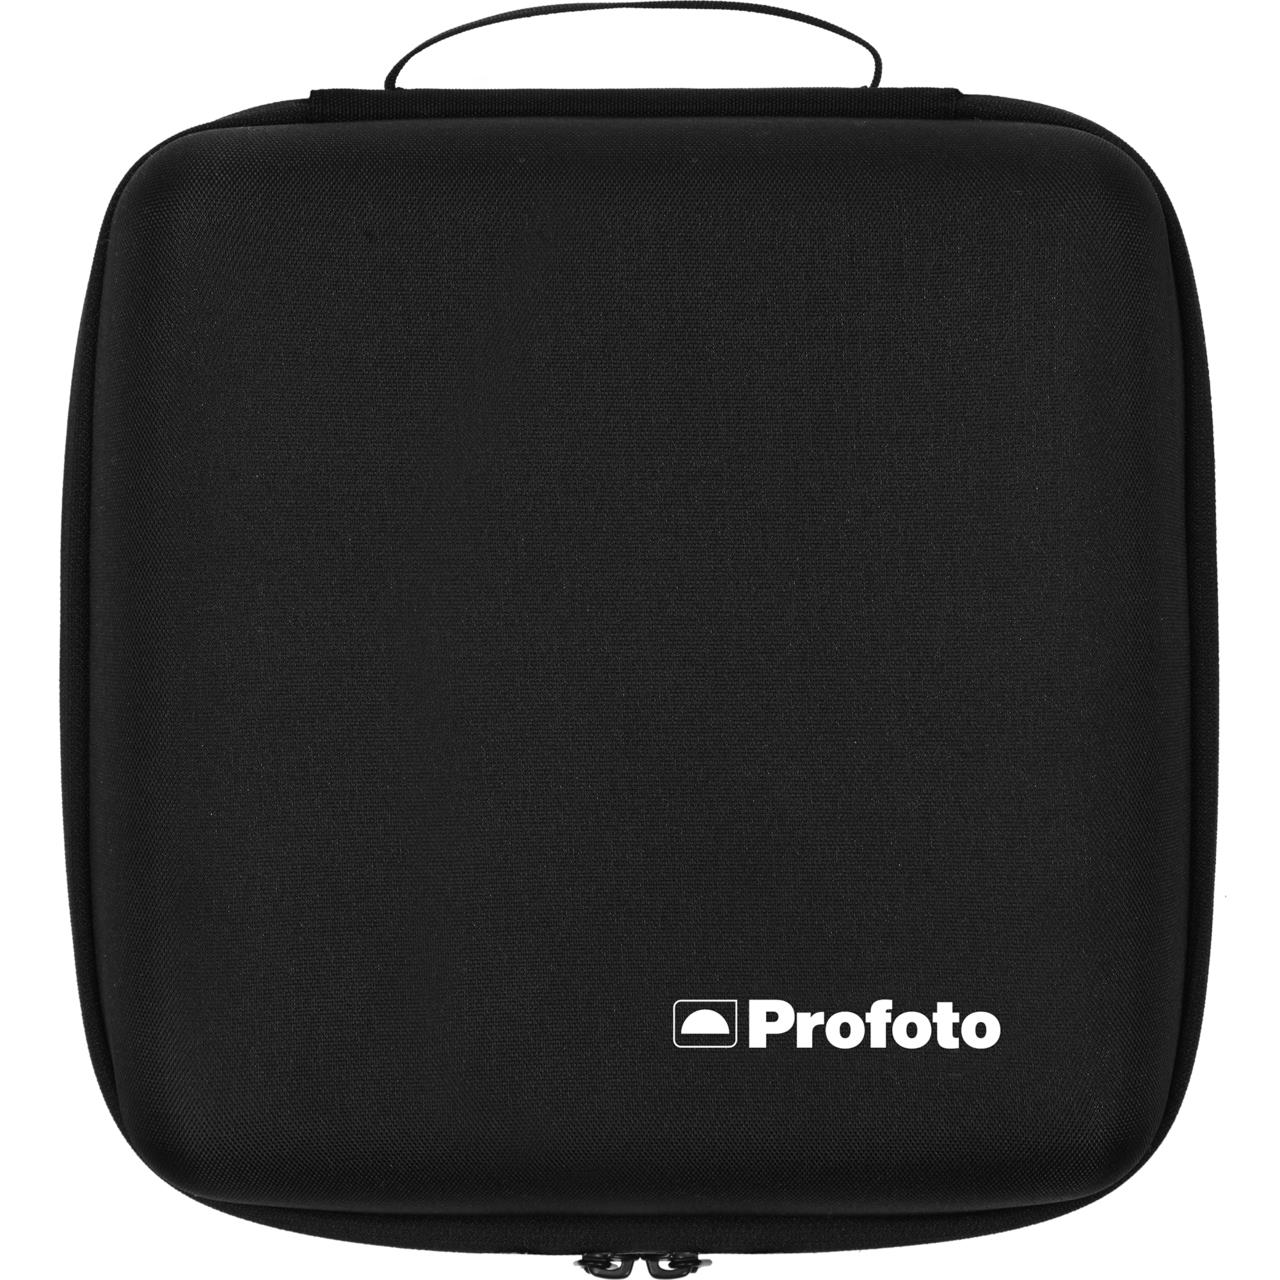 Profoto B10 Plus Case (for 1 B10 Plus)